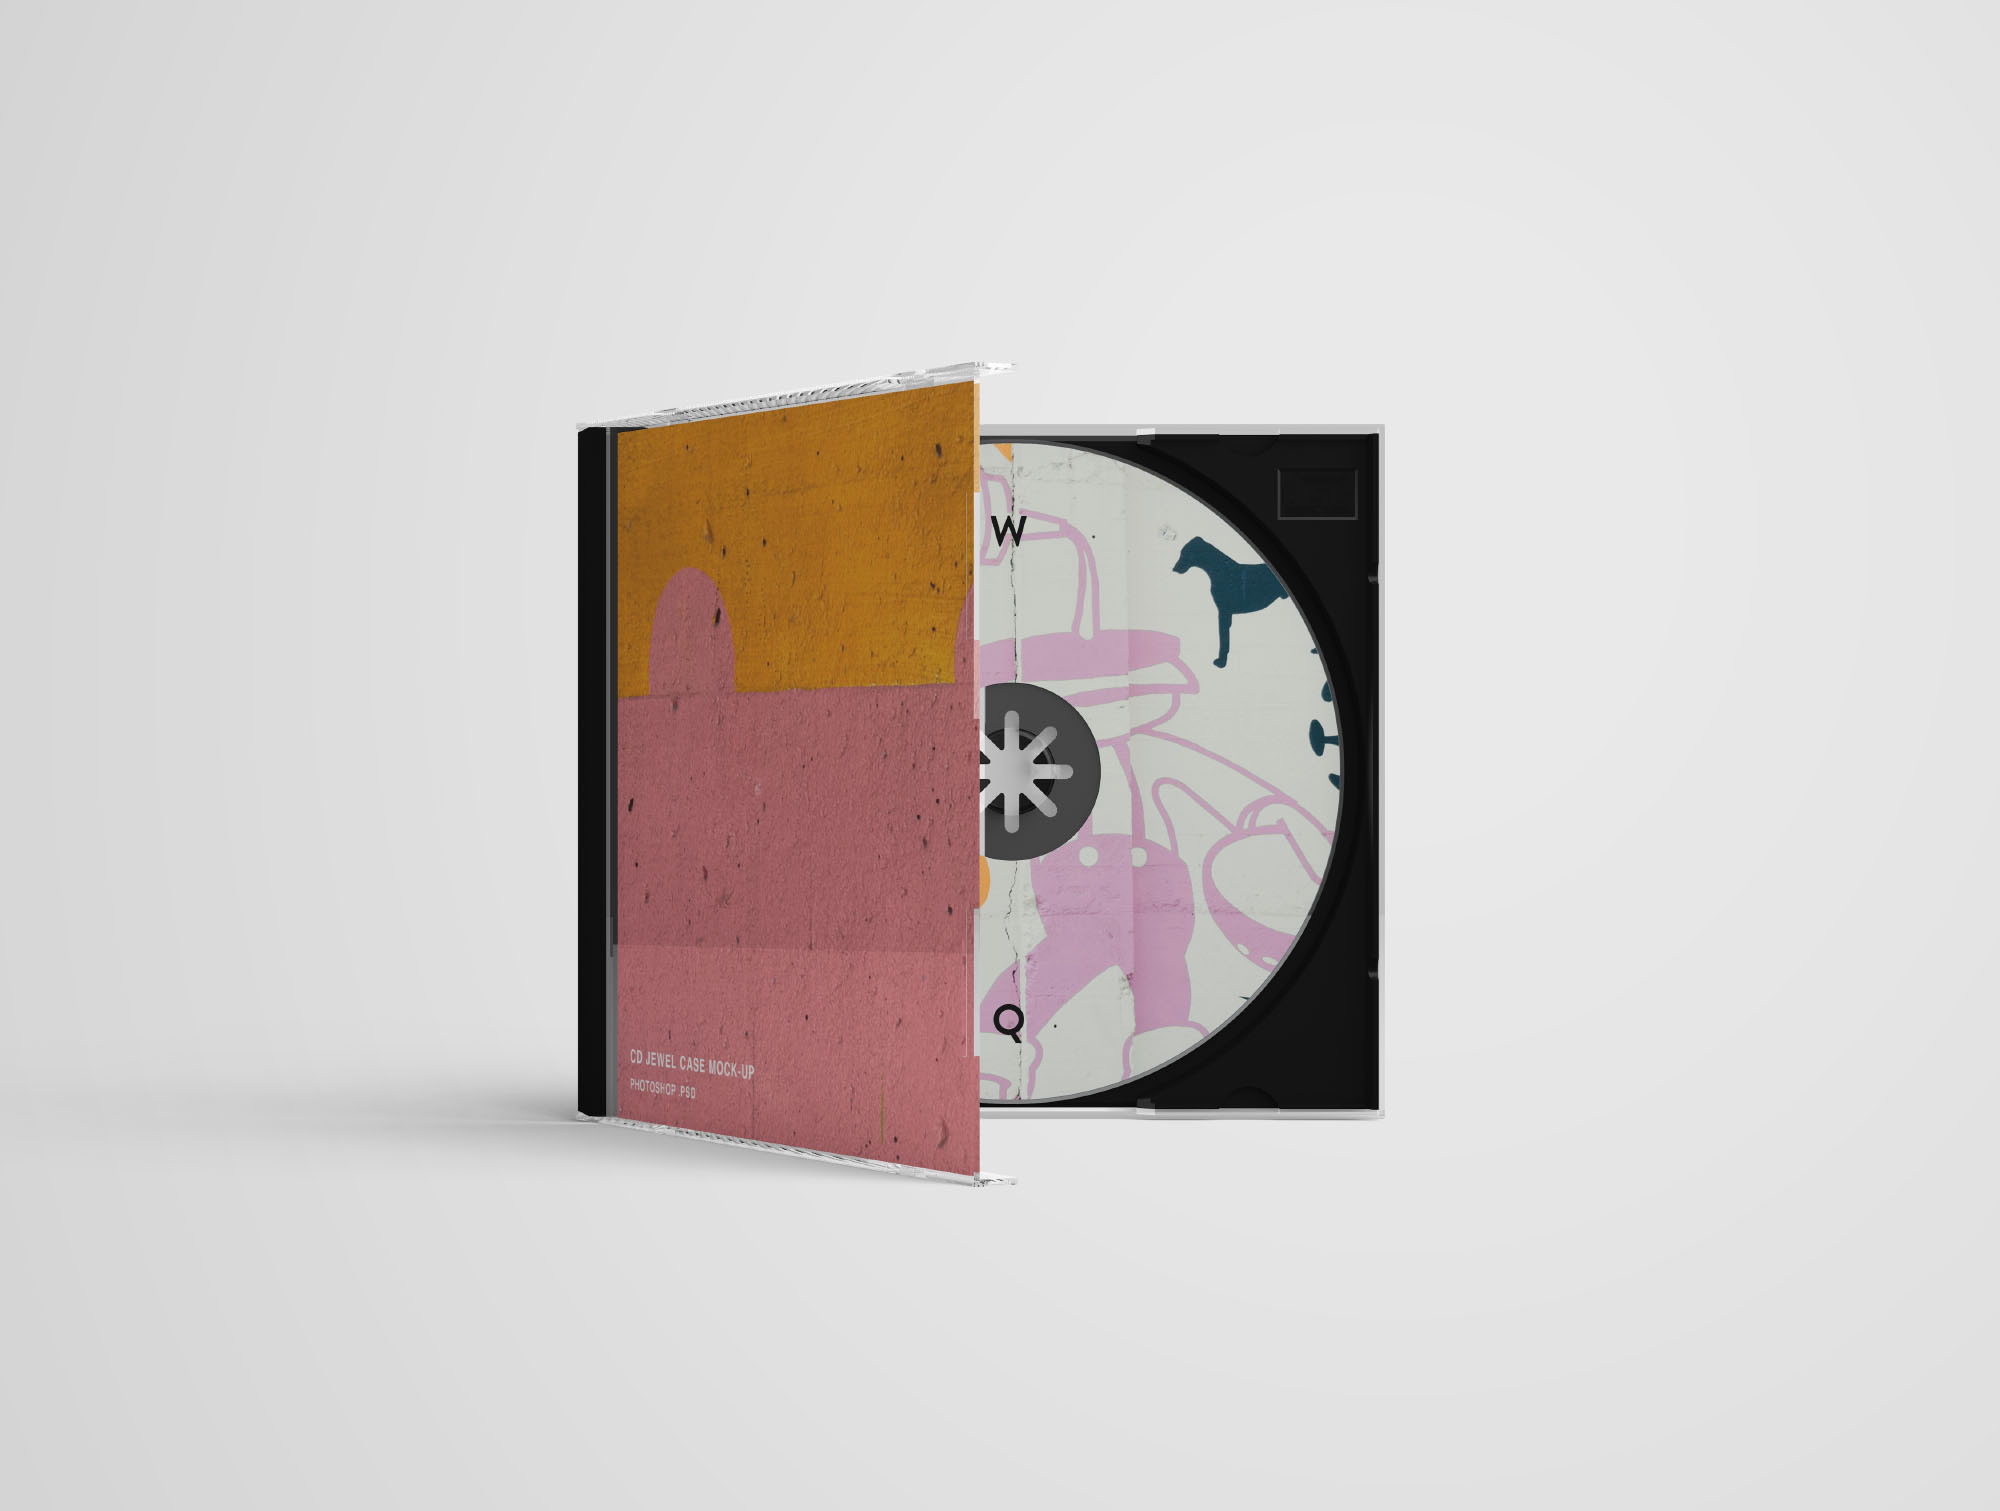 cd jewel case mockup photoshop psd